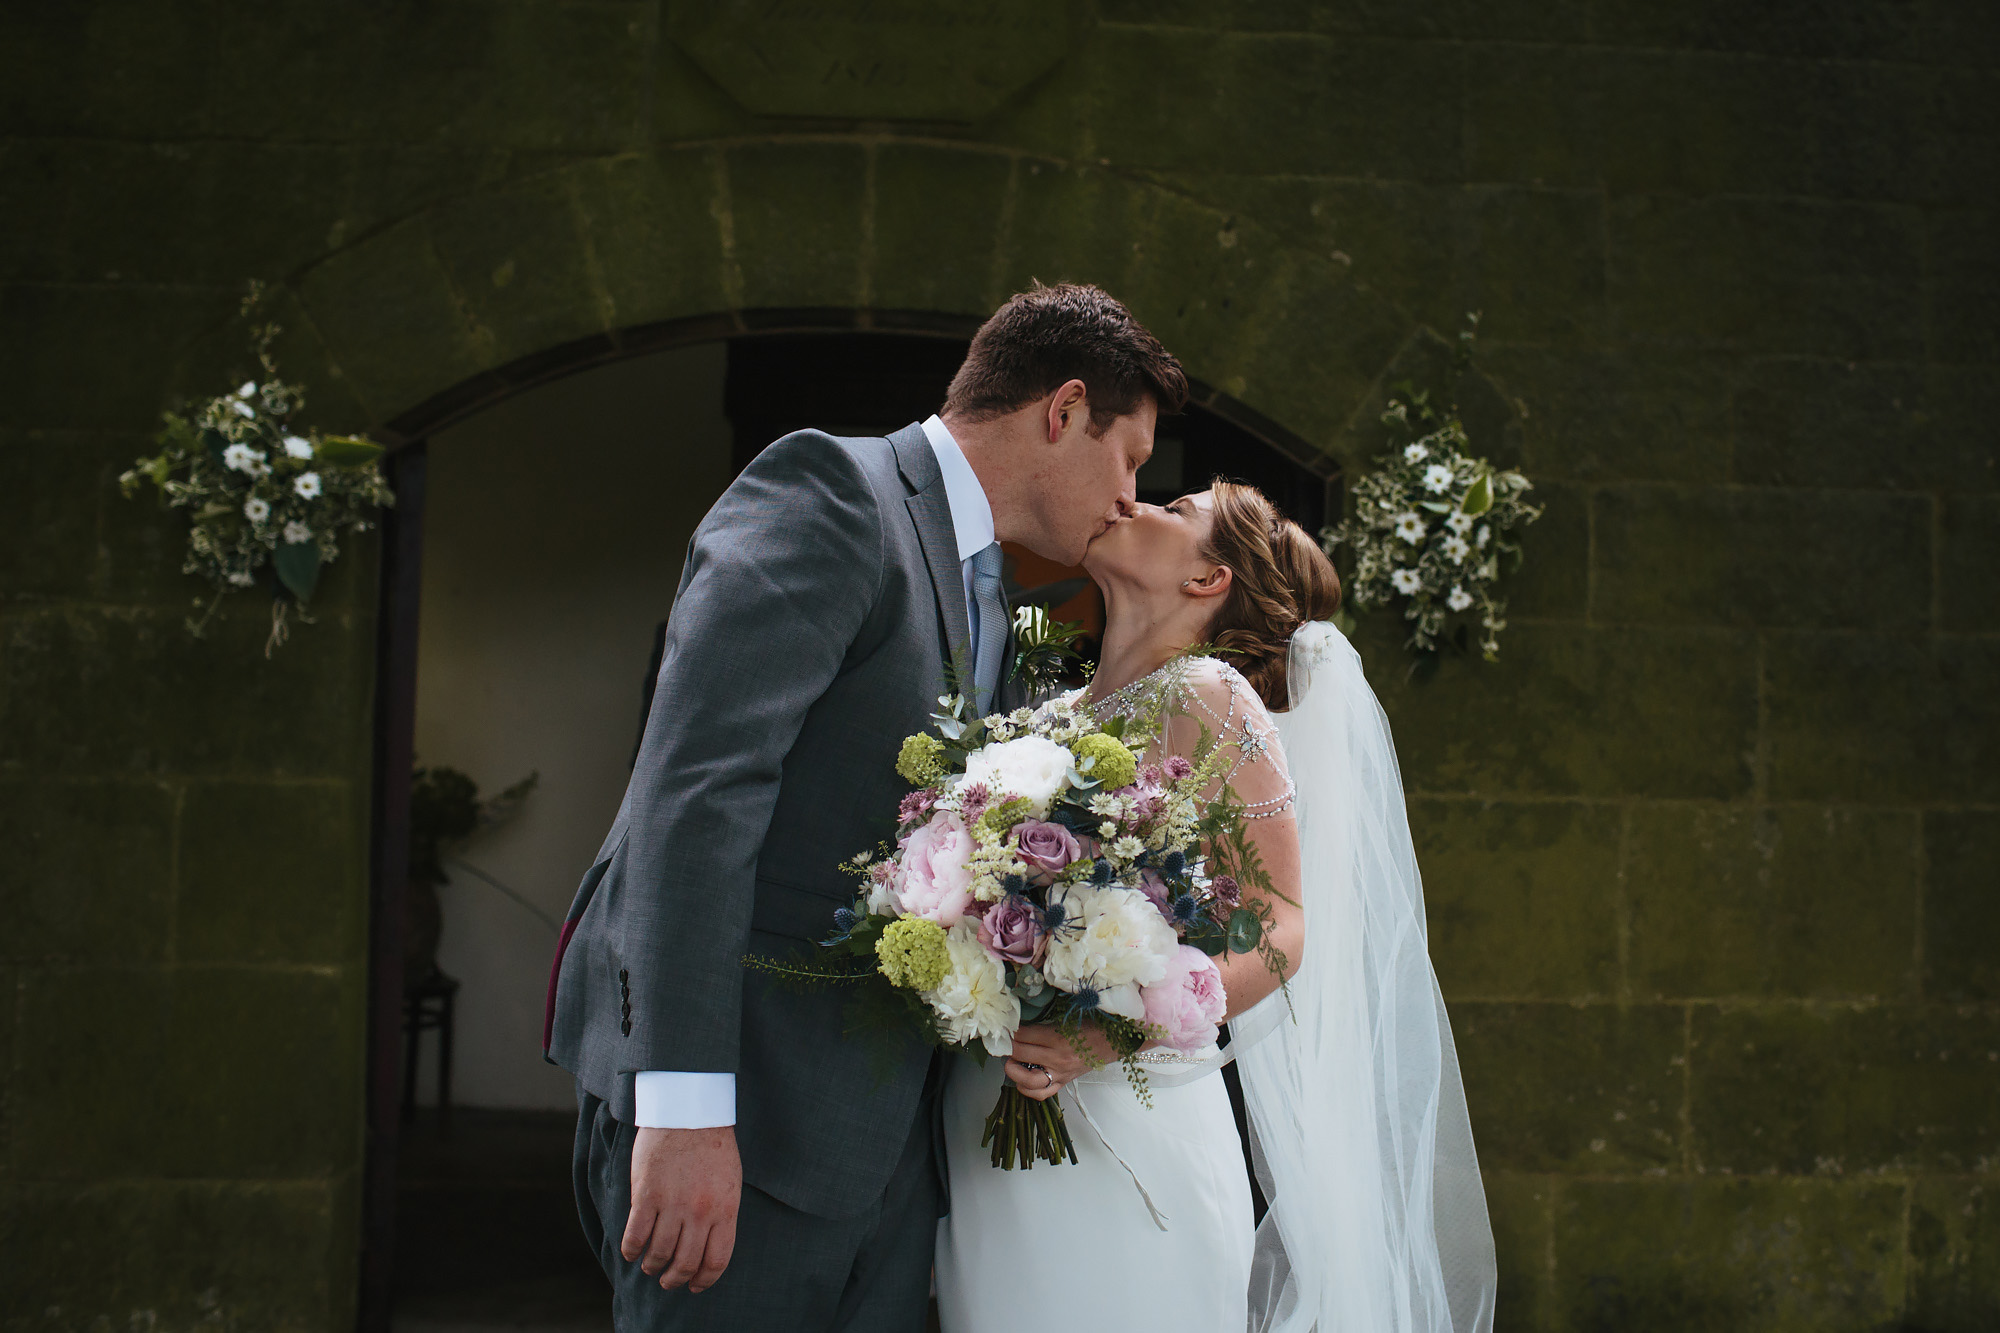 Bride and groom kiss outside the church after their wedding